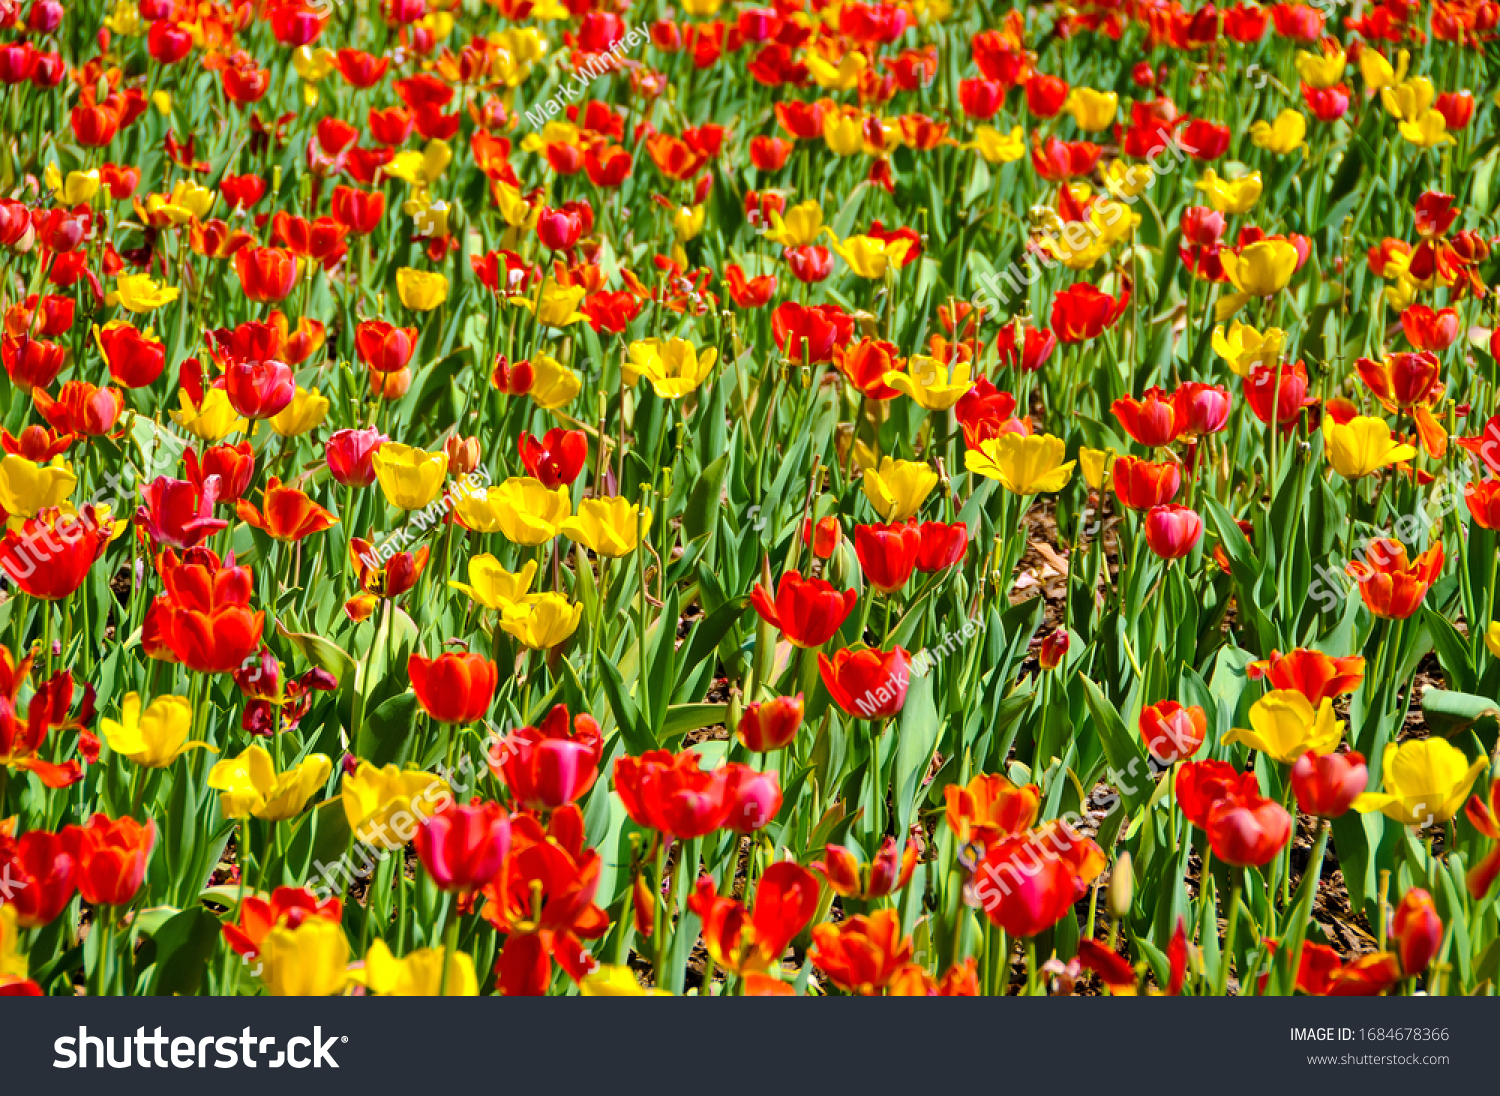 stock-photo-a-field-full-of-beautiful-tu